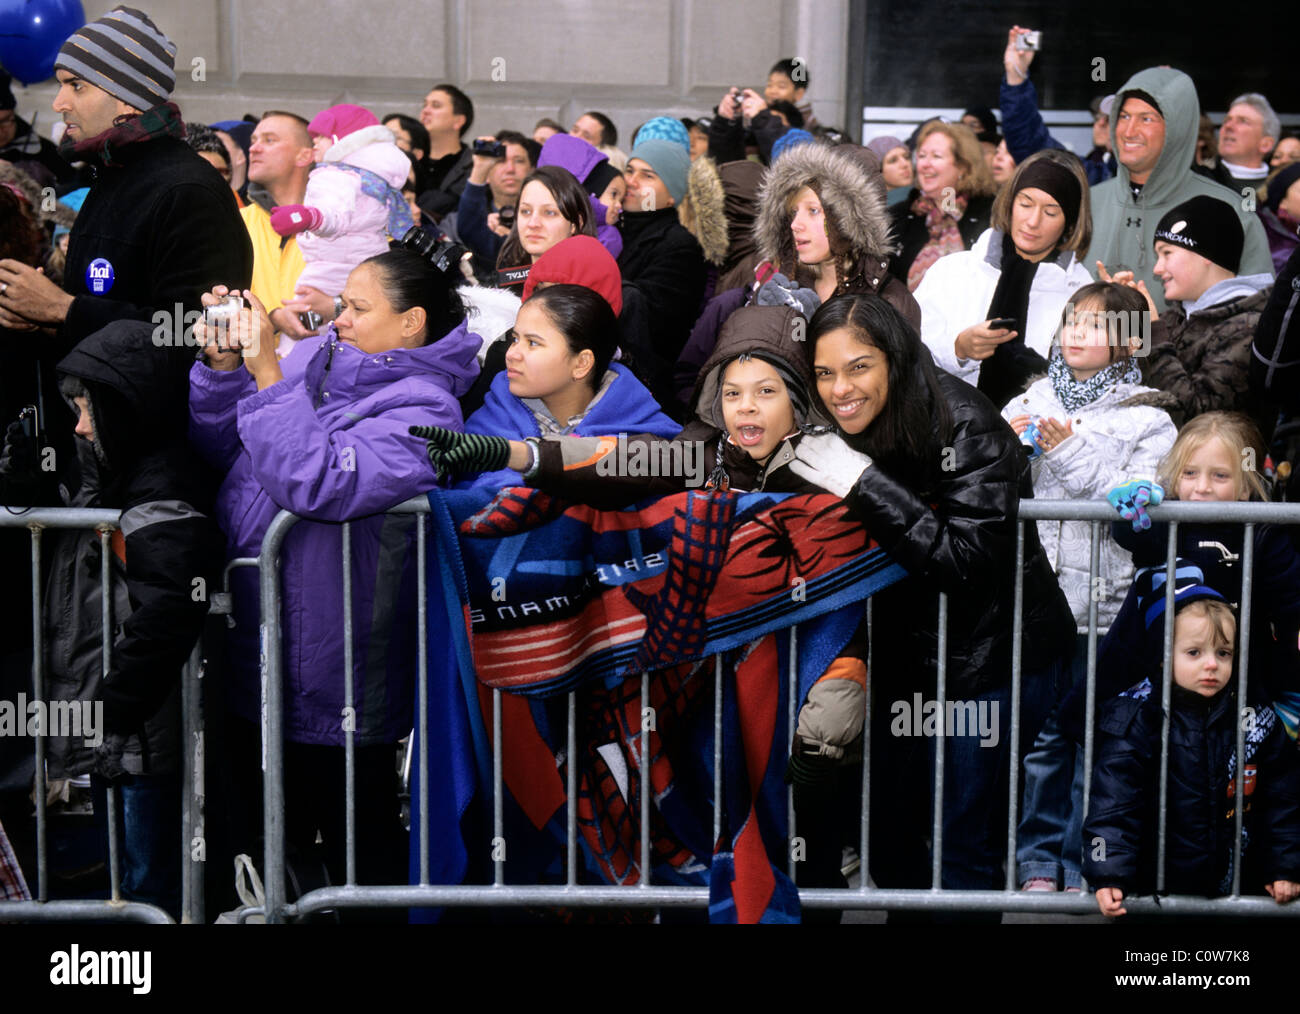 Macy's Thanksgiving Day Parade Crowd of People Watching on the Street New York City USA - Stock Image